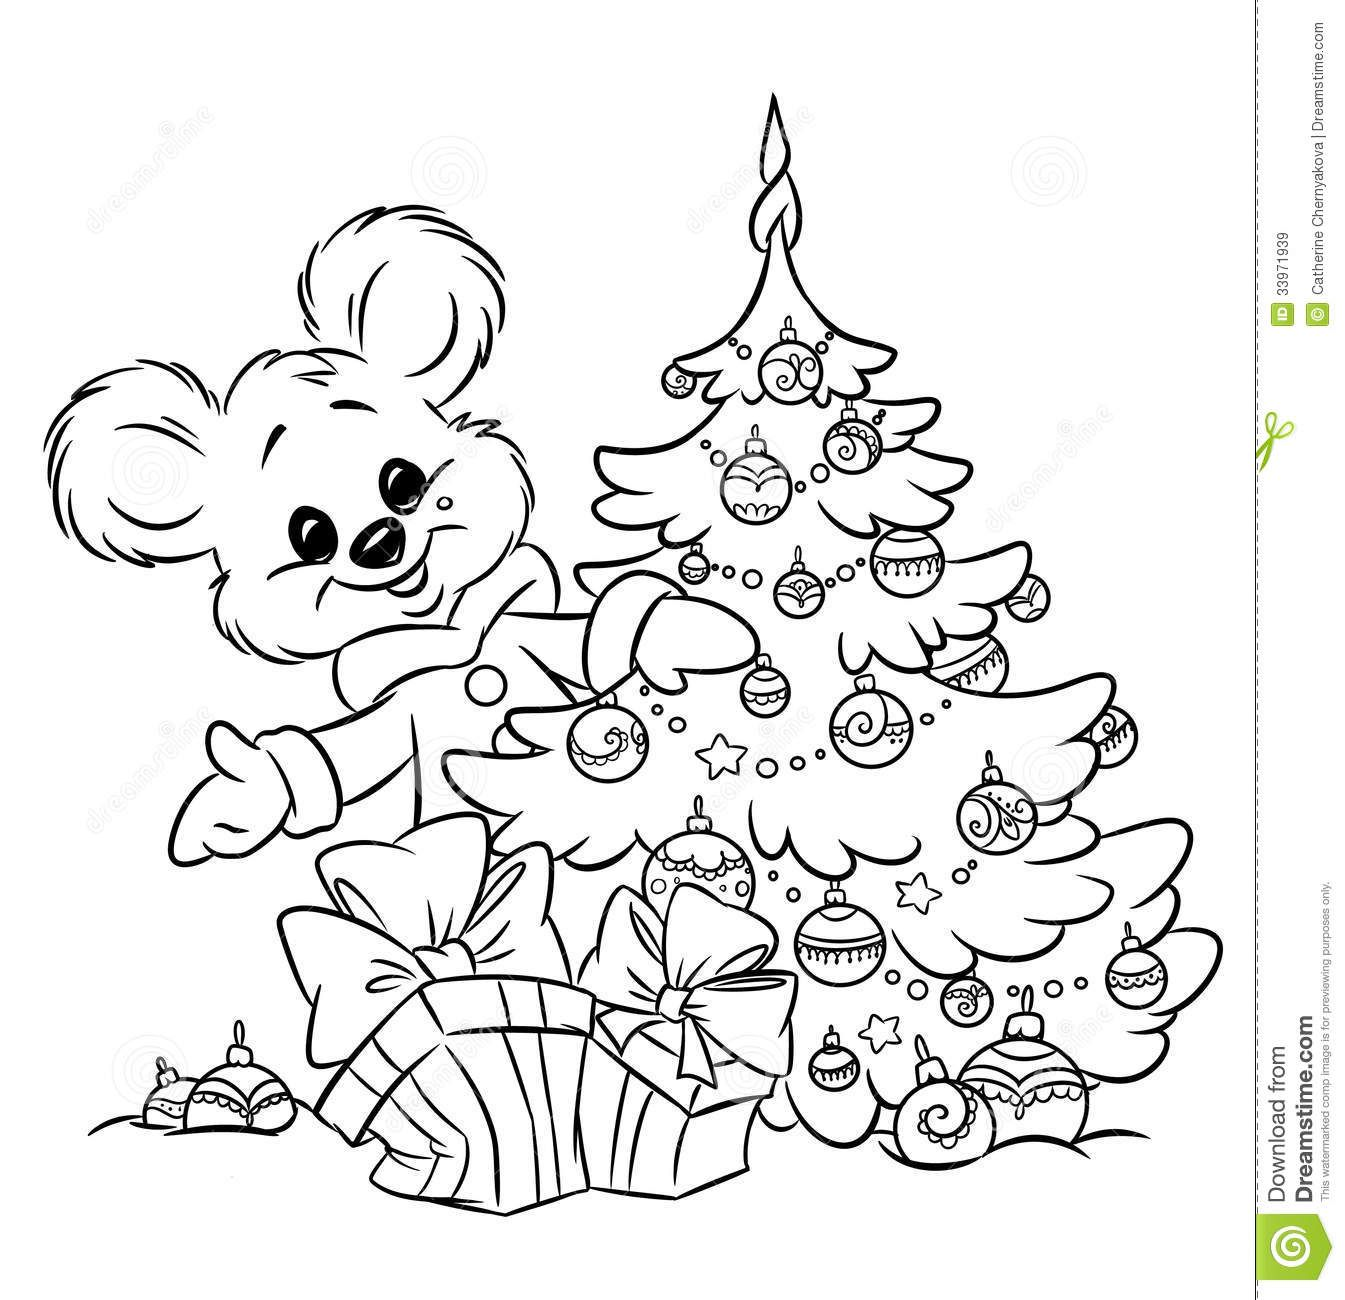 christmas ornament coloring pages christmas teddy bear tree ornaments gift colorin royalty free stock